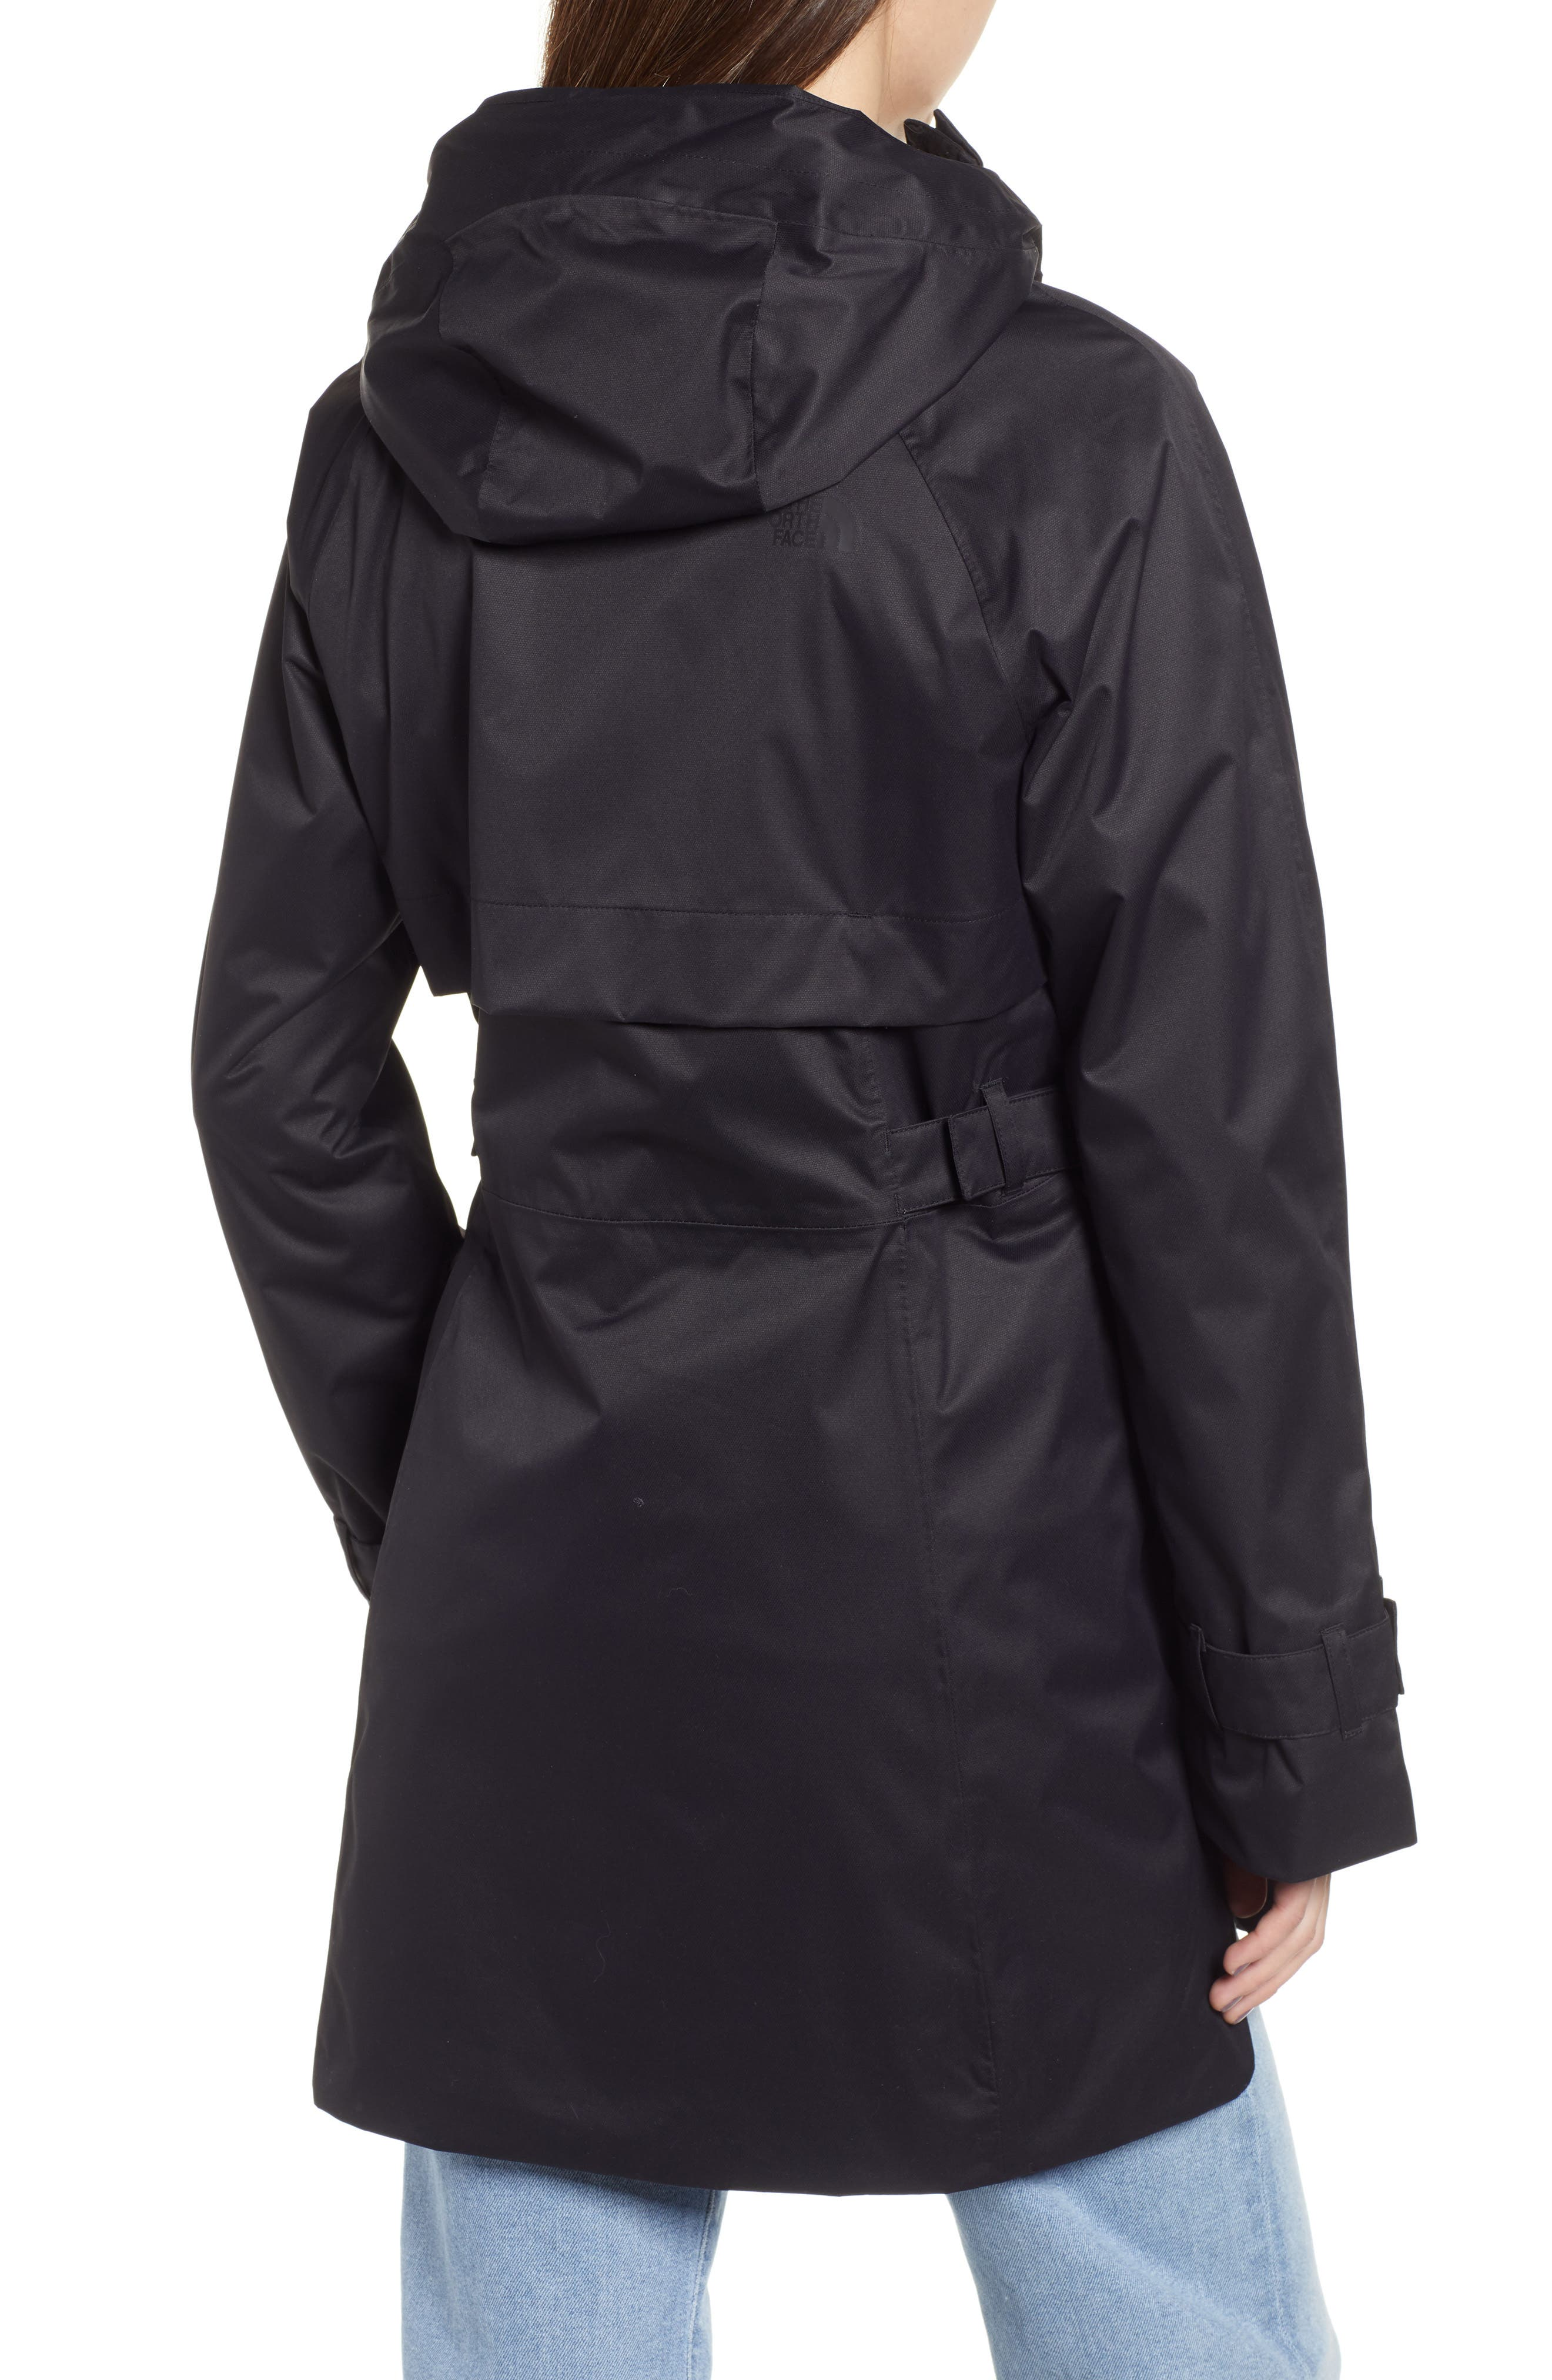 THE NORTH FACE, City Breeze Trench Raincoat, Alternate thumbnail 2, color, TNF BLACK